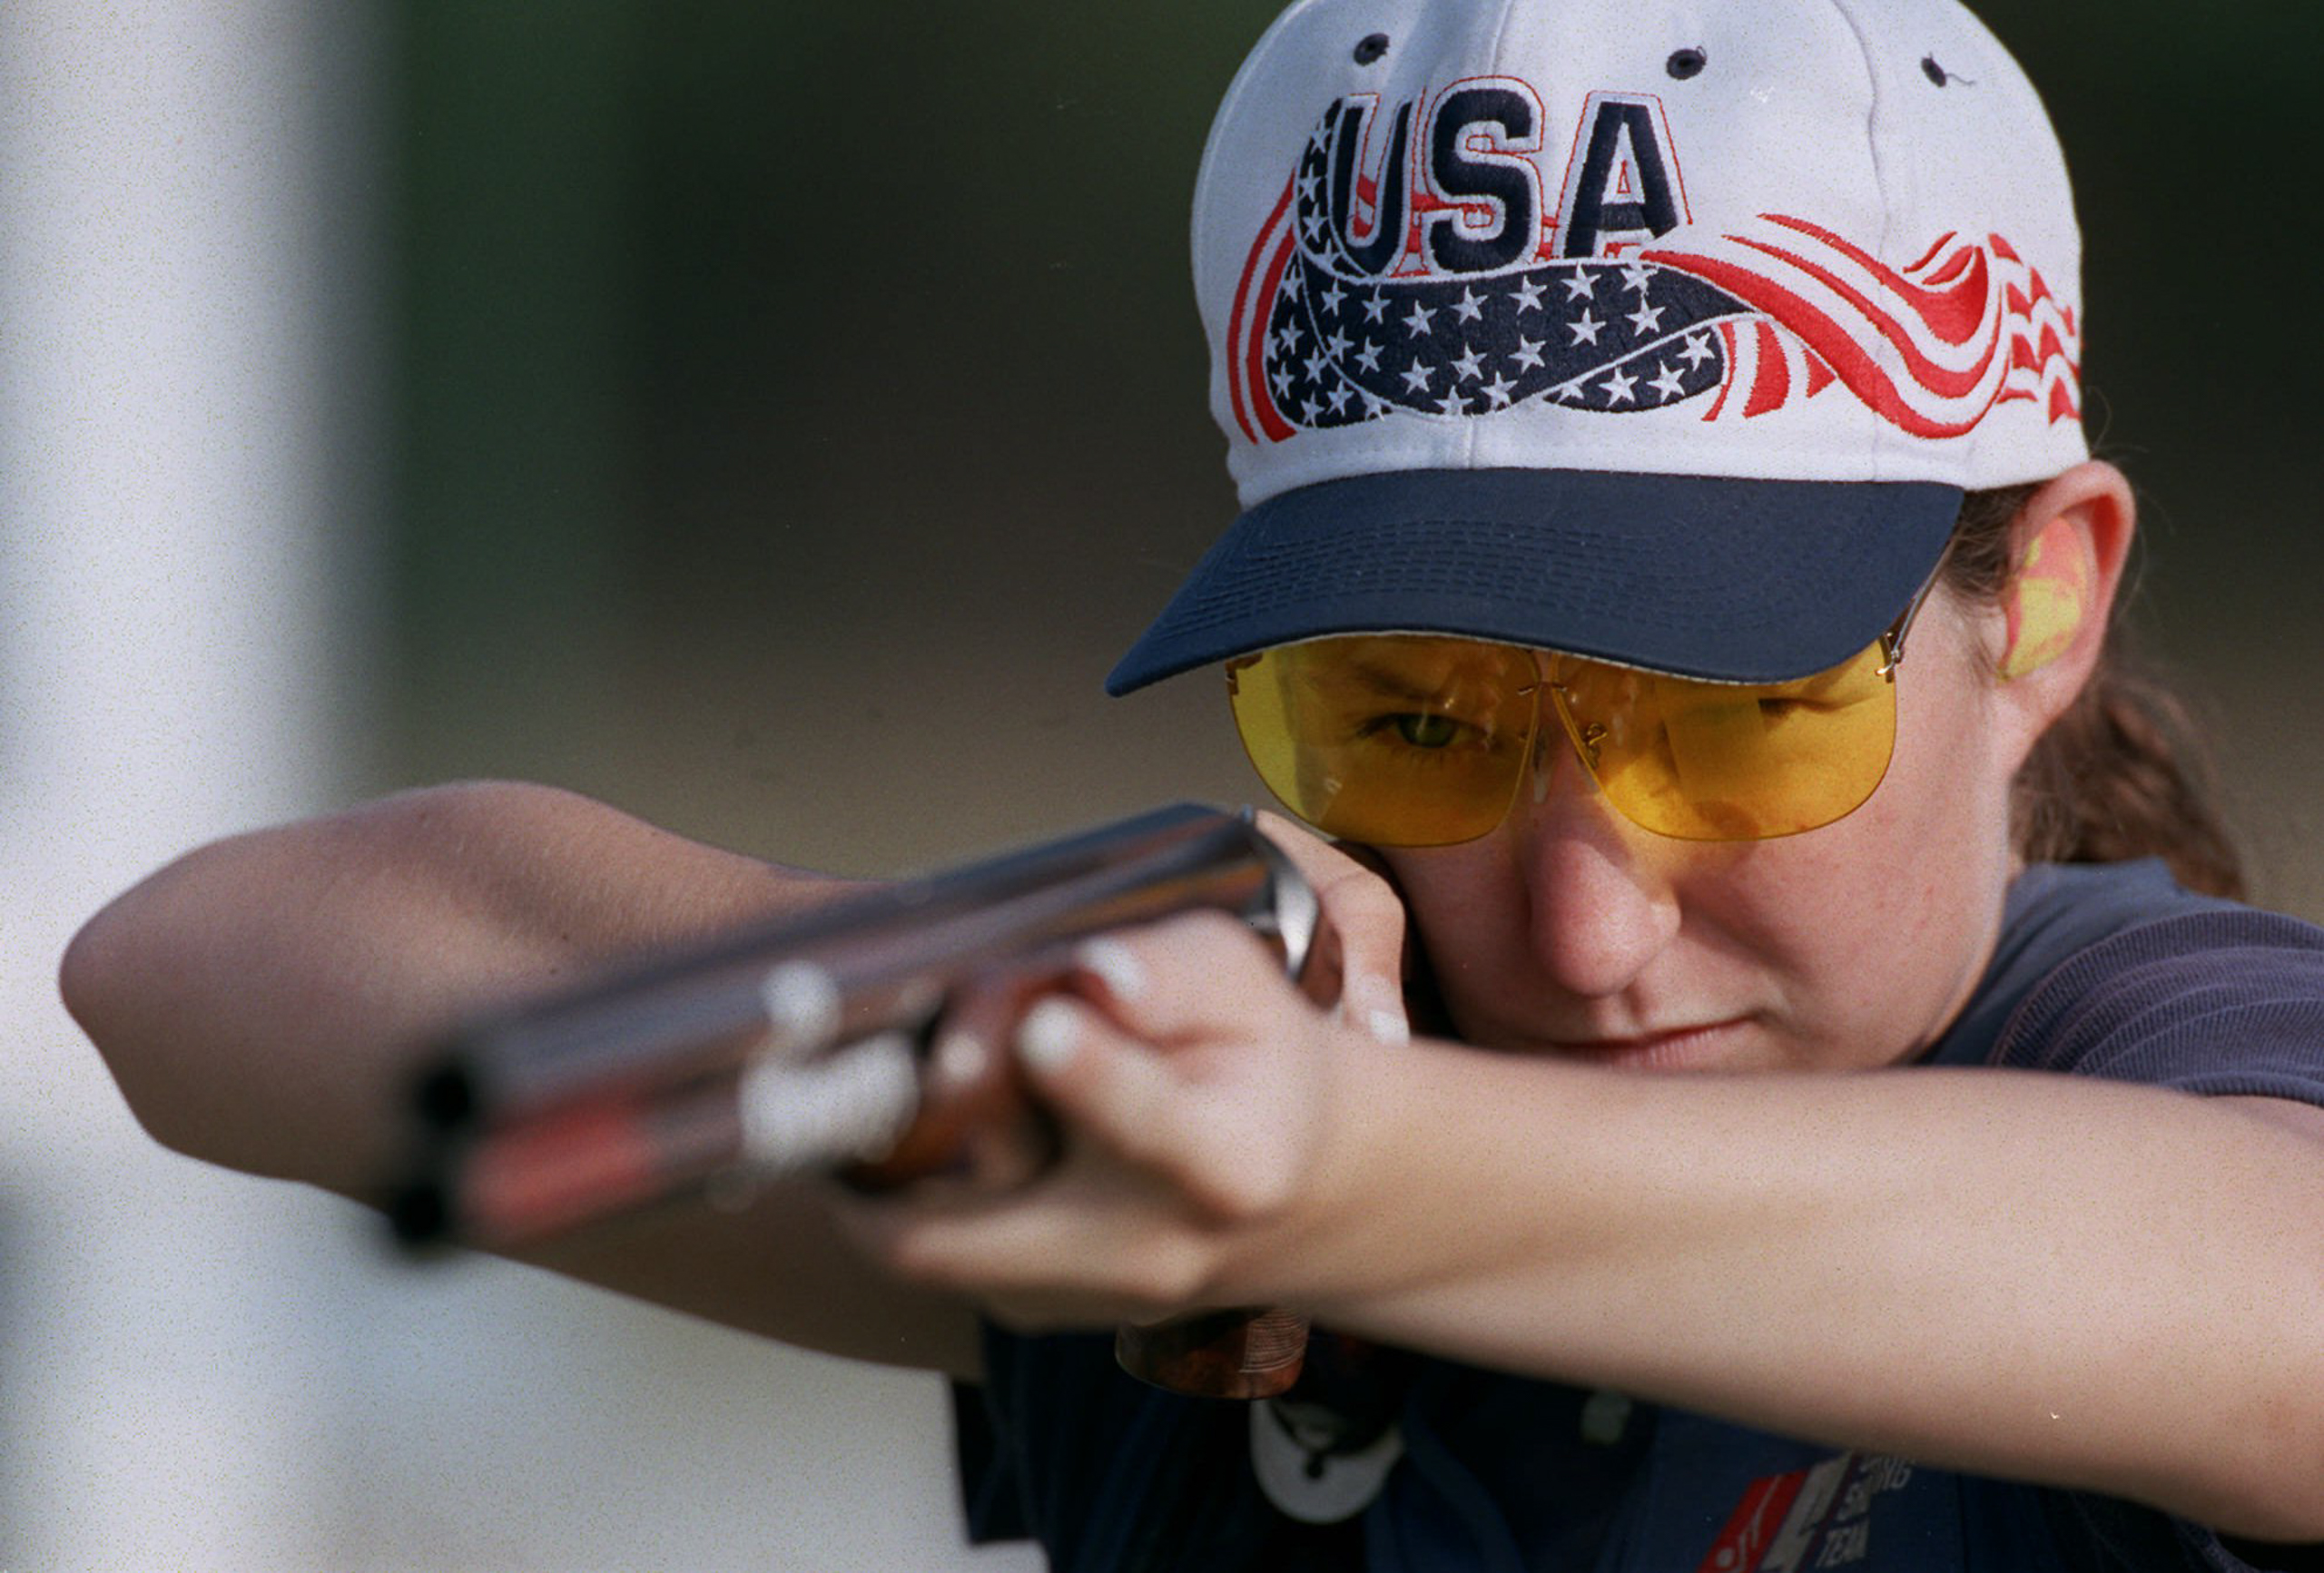 <strong>Kim Rhode, Shooting, USA</strong>With a medal in skeet, Rhode, 37, would become the first woman to win medals in six straight Olympics. (Italian luger Armin Zöggeler did it on the men's side.)